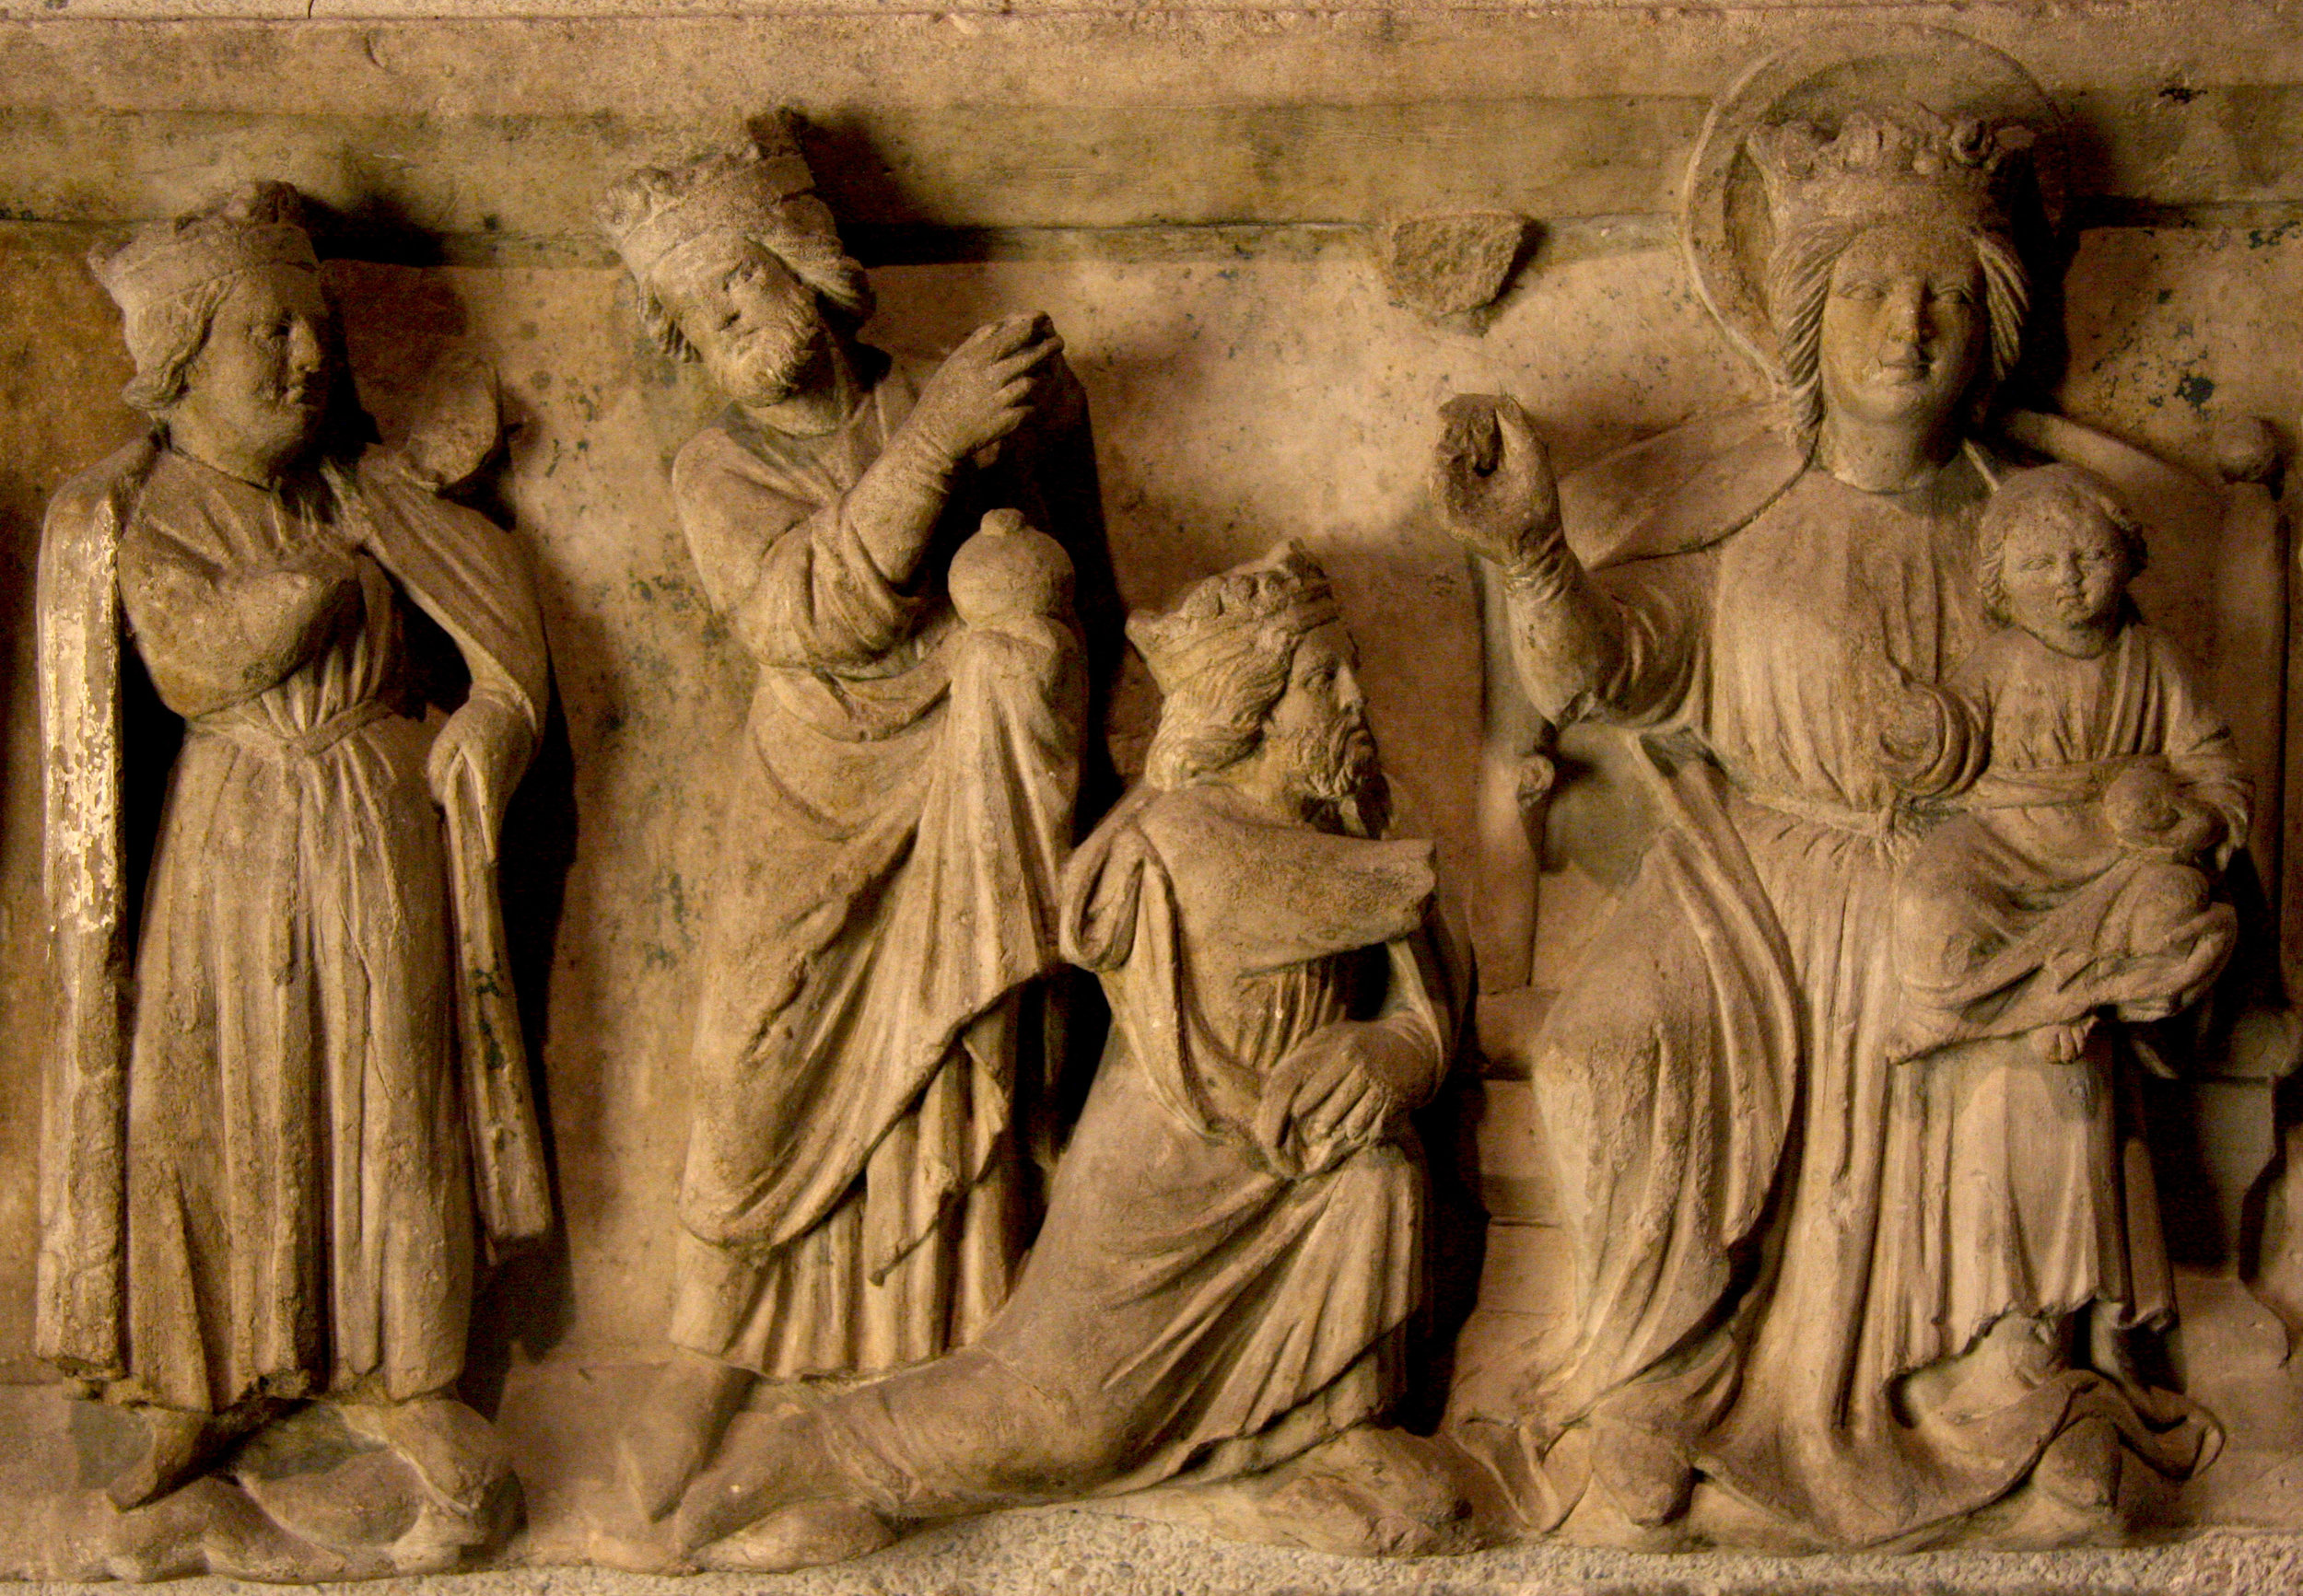 Figure 5: This limestone relief with the Adoration of the Magi, in the collection of Glencairn Museum (09.SP.119), was made in 13th-century France. All three of the Magi are represented as kings with crowns, in keeping with medieval tradition. The first king, whose arm is broken off, is depicted kneeling and presenting a gift. Collection of Glencairn Museum.